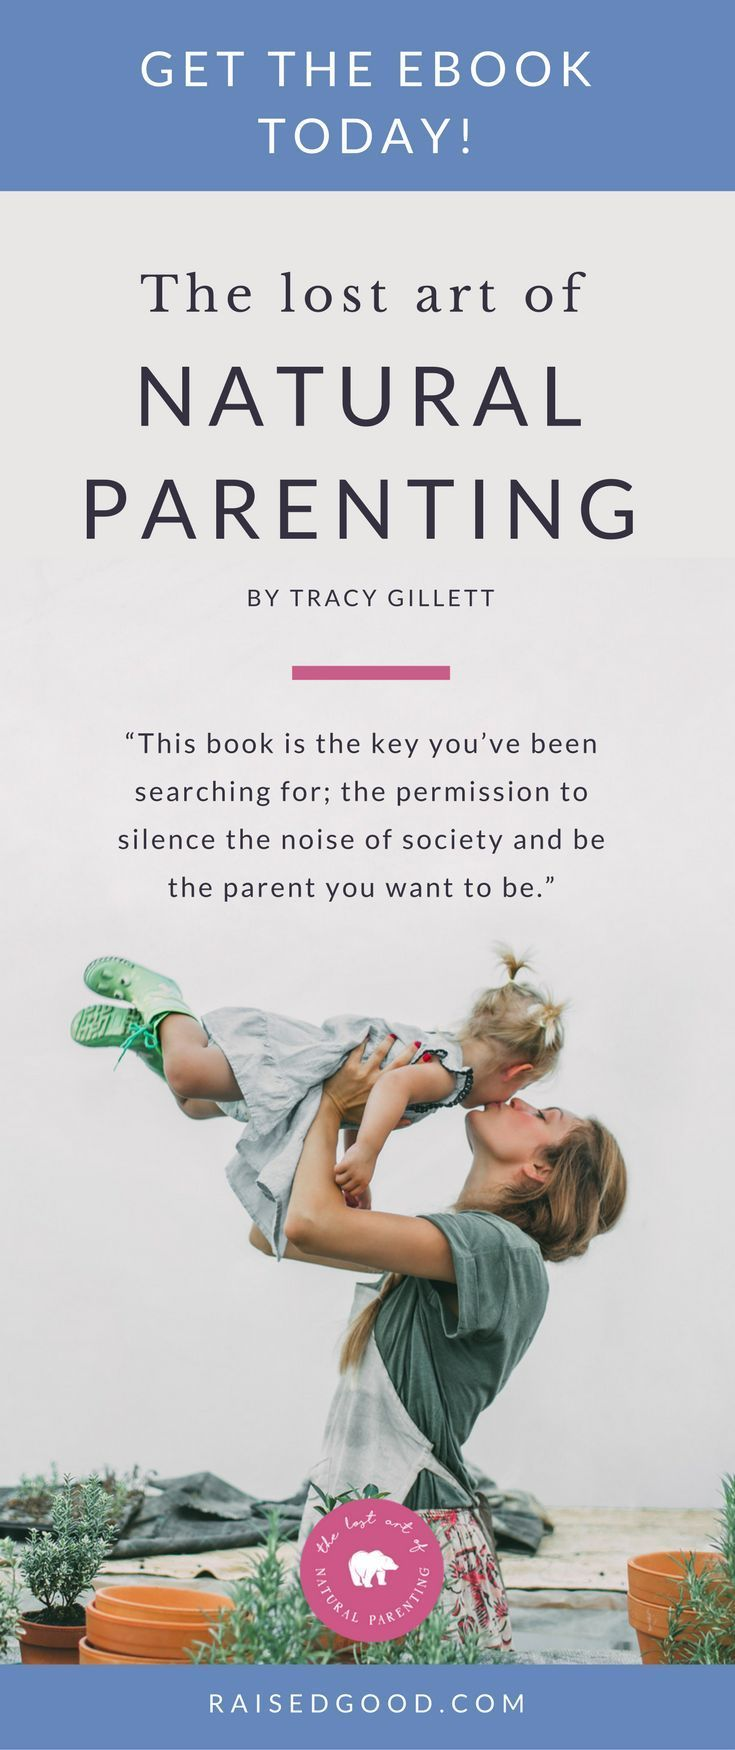 """""""The Lost Art Of Natural Parenting is an inspiring resource for parents of young children, using the lens of brain development to suggest wiser decisions about everything from sleep and breastfeeding to discipline and play. Tracy Gillett's evidence-based arguments challenge the conventional parenting paradigm, citing recent research and empowering parents to follow their instincts."""" – Dr. Laura Markham, Author of Peaceful Parent, Happy Kids: How To Stop Yelling and Start Connecting"""